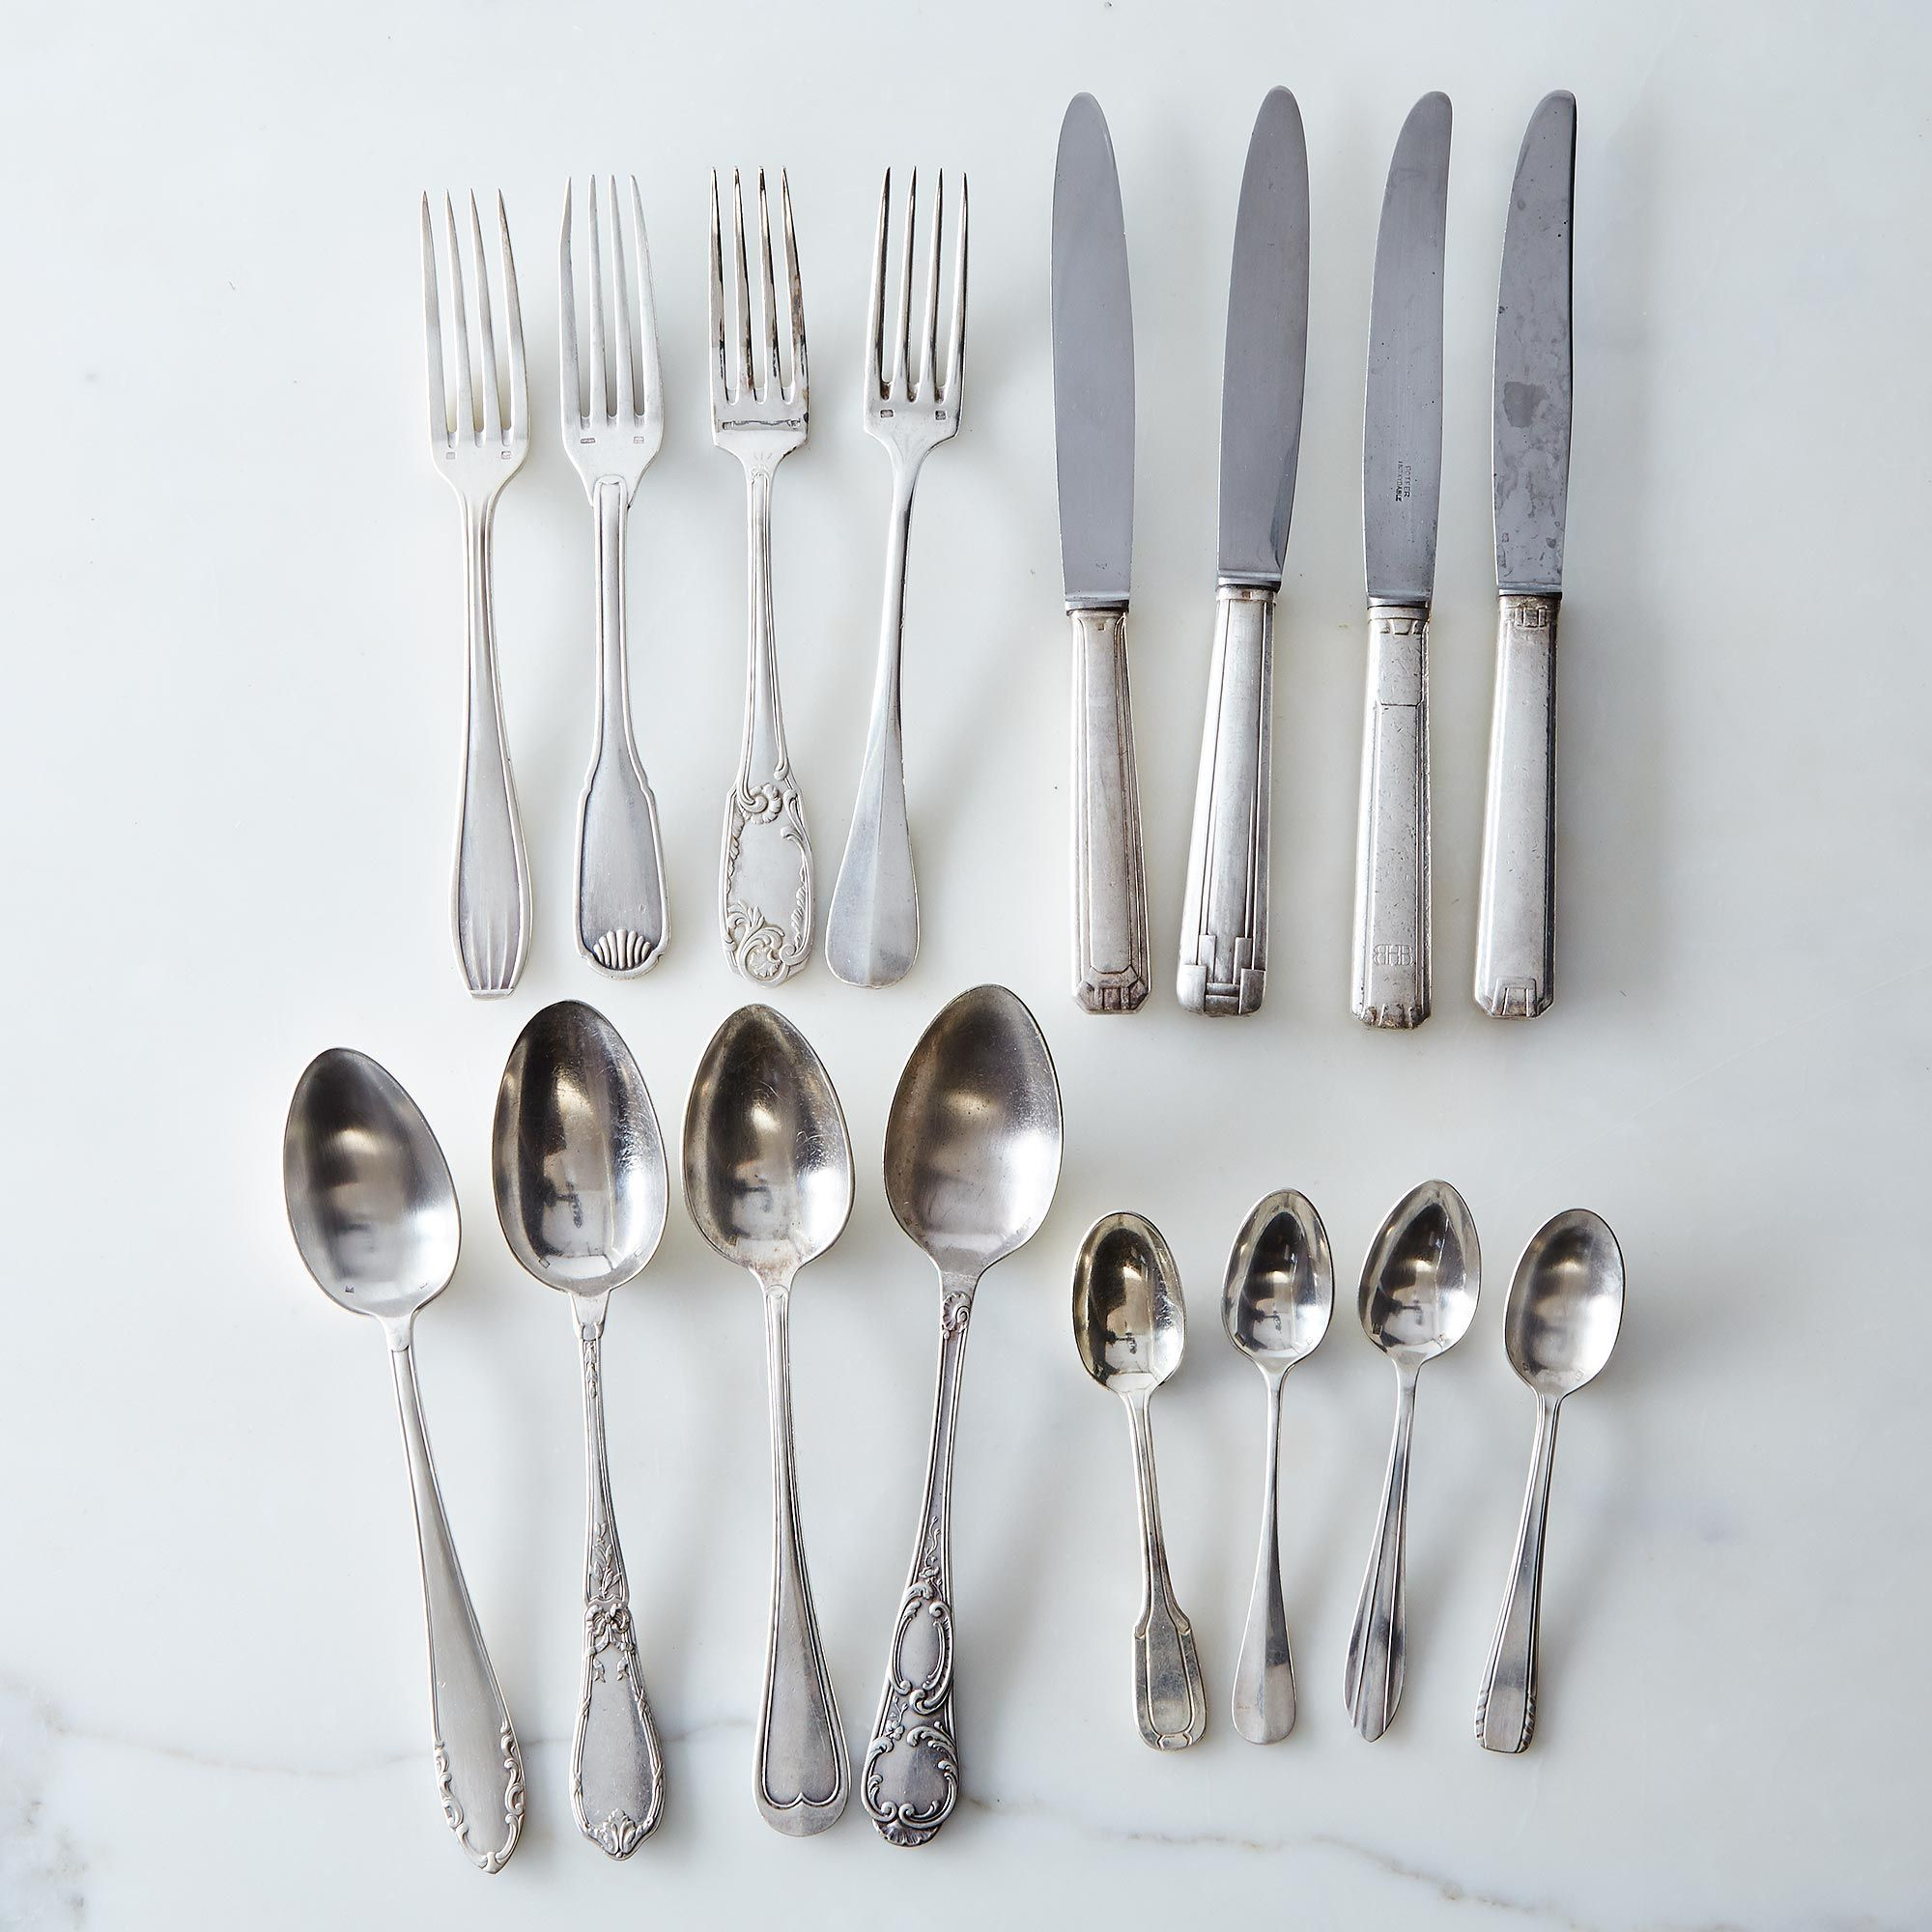 Vintage Silver-Plated French Flatware $89–$425